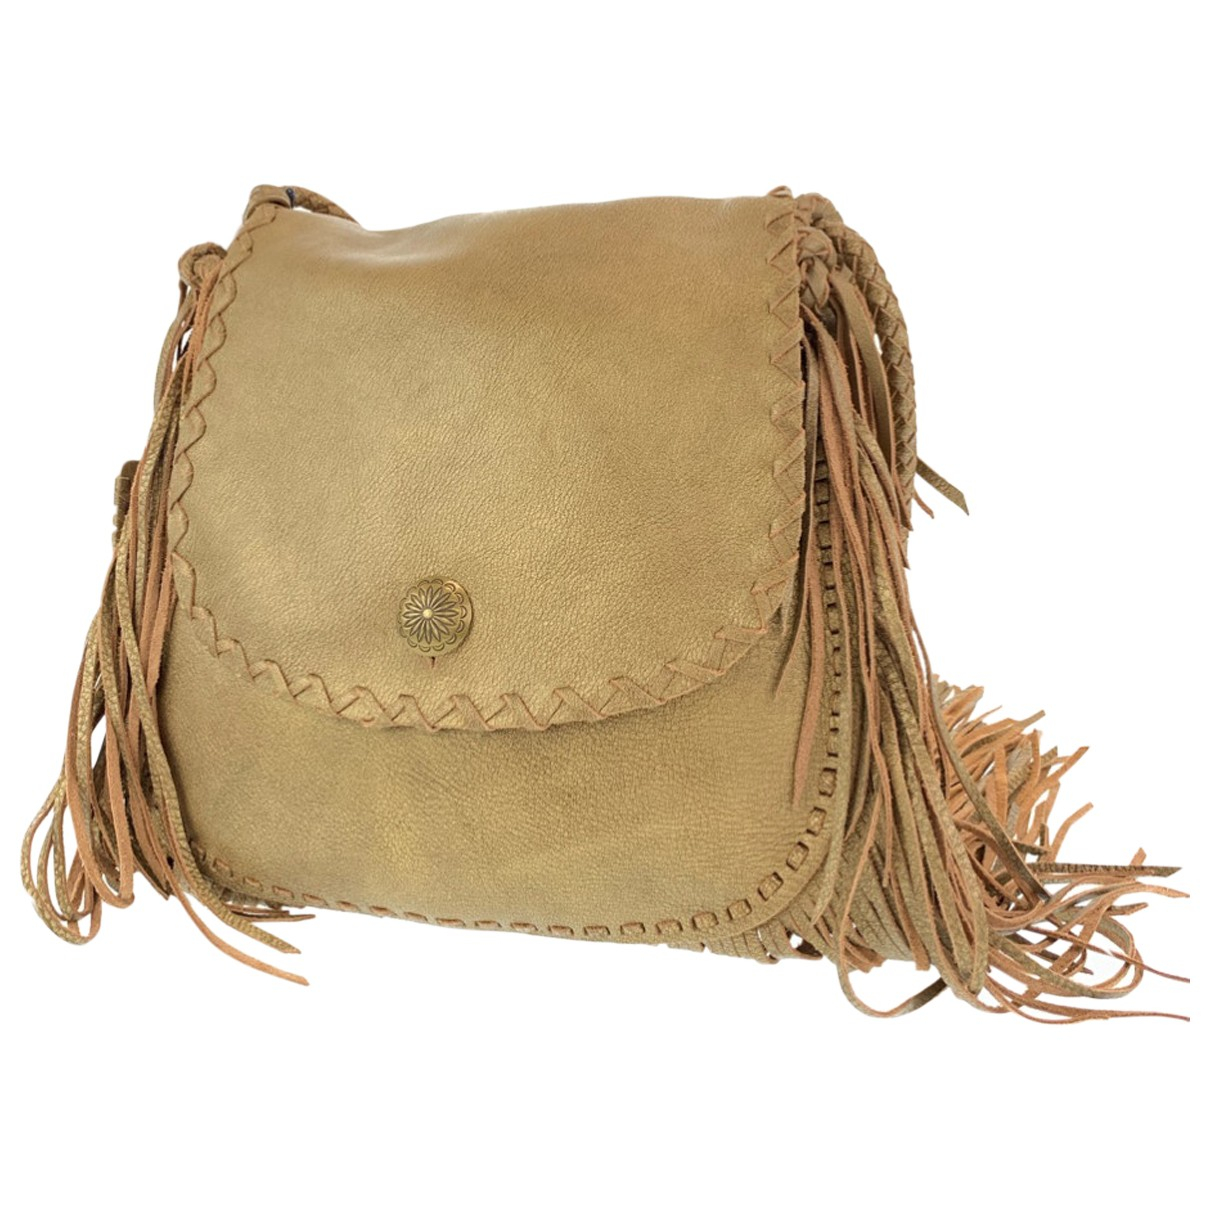 Ralph Lauren N Leather handbag for Women N